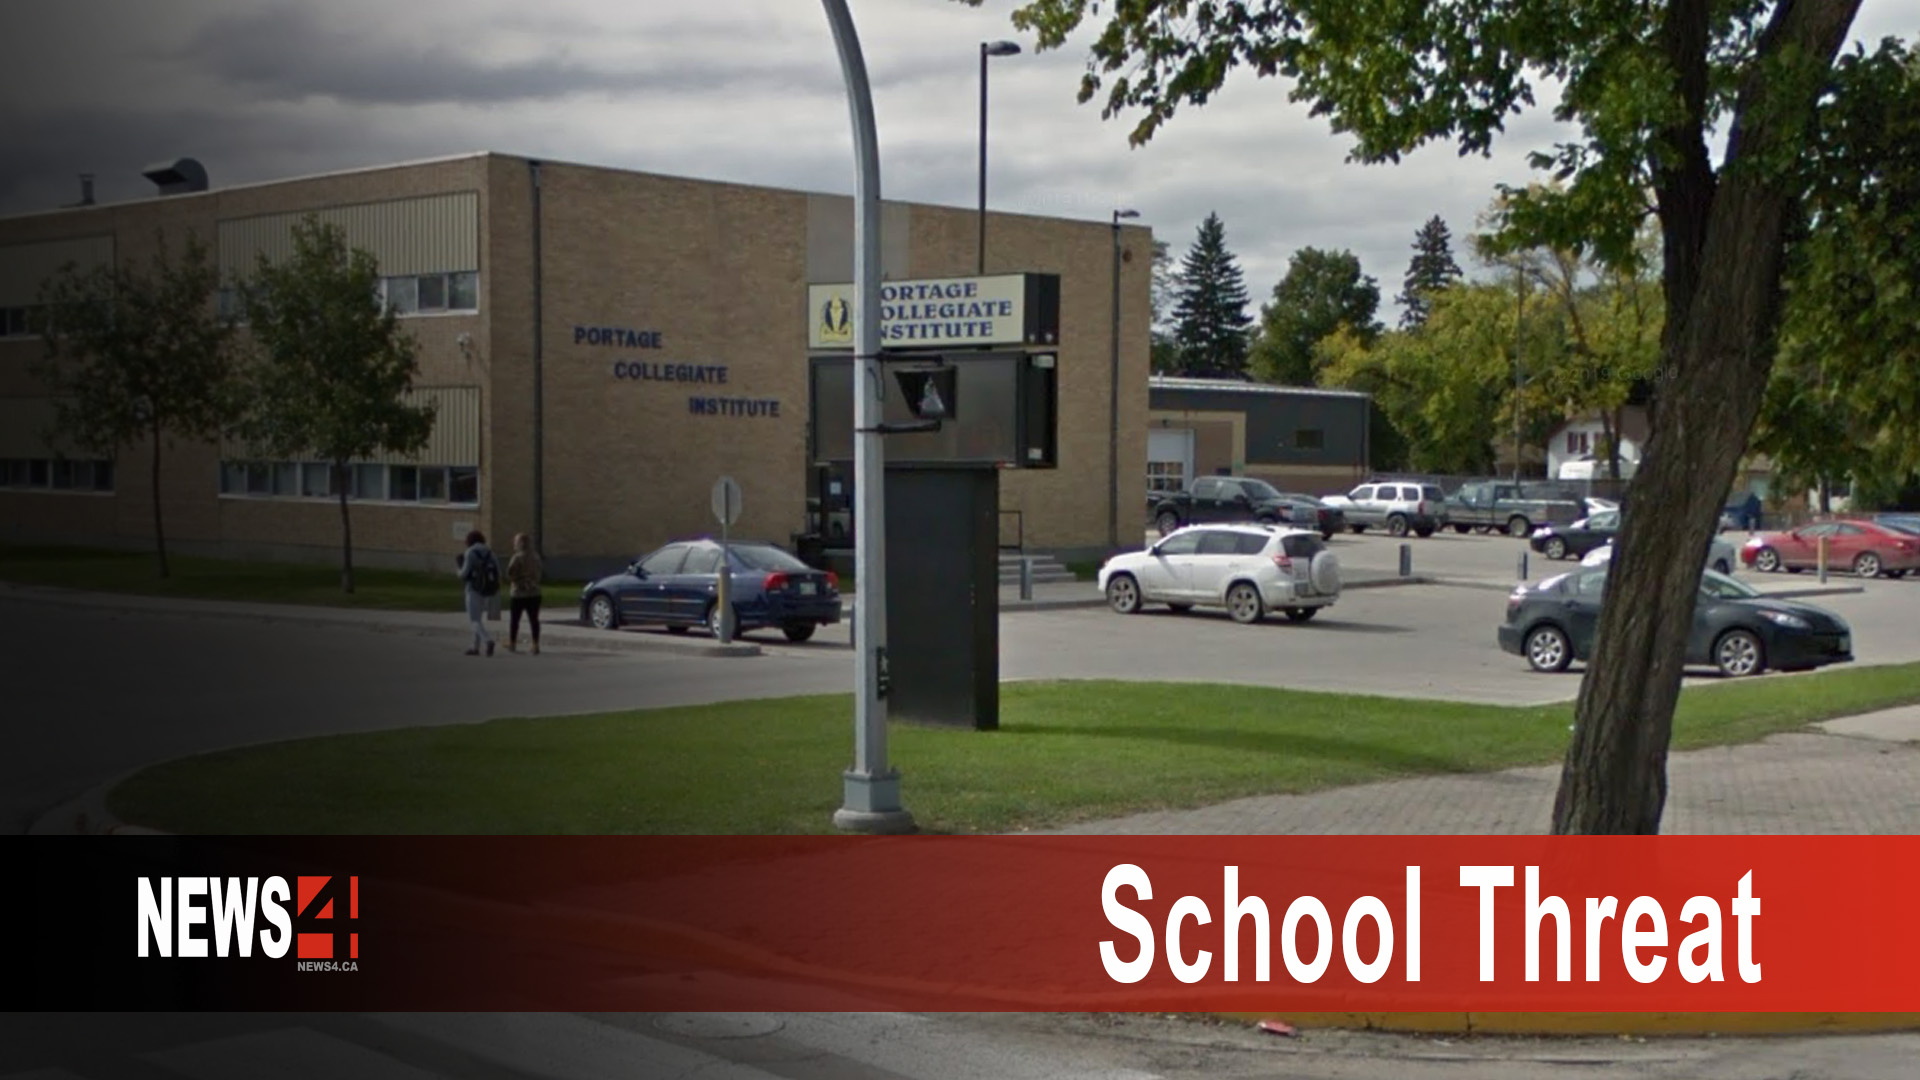 RCMP looking for person who made 'serious threats' against school